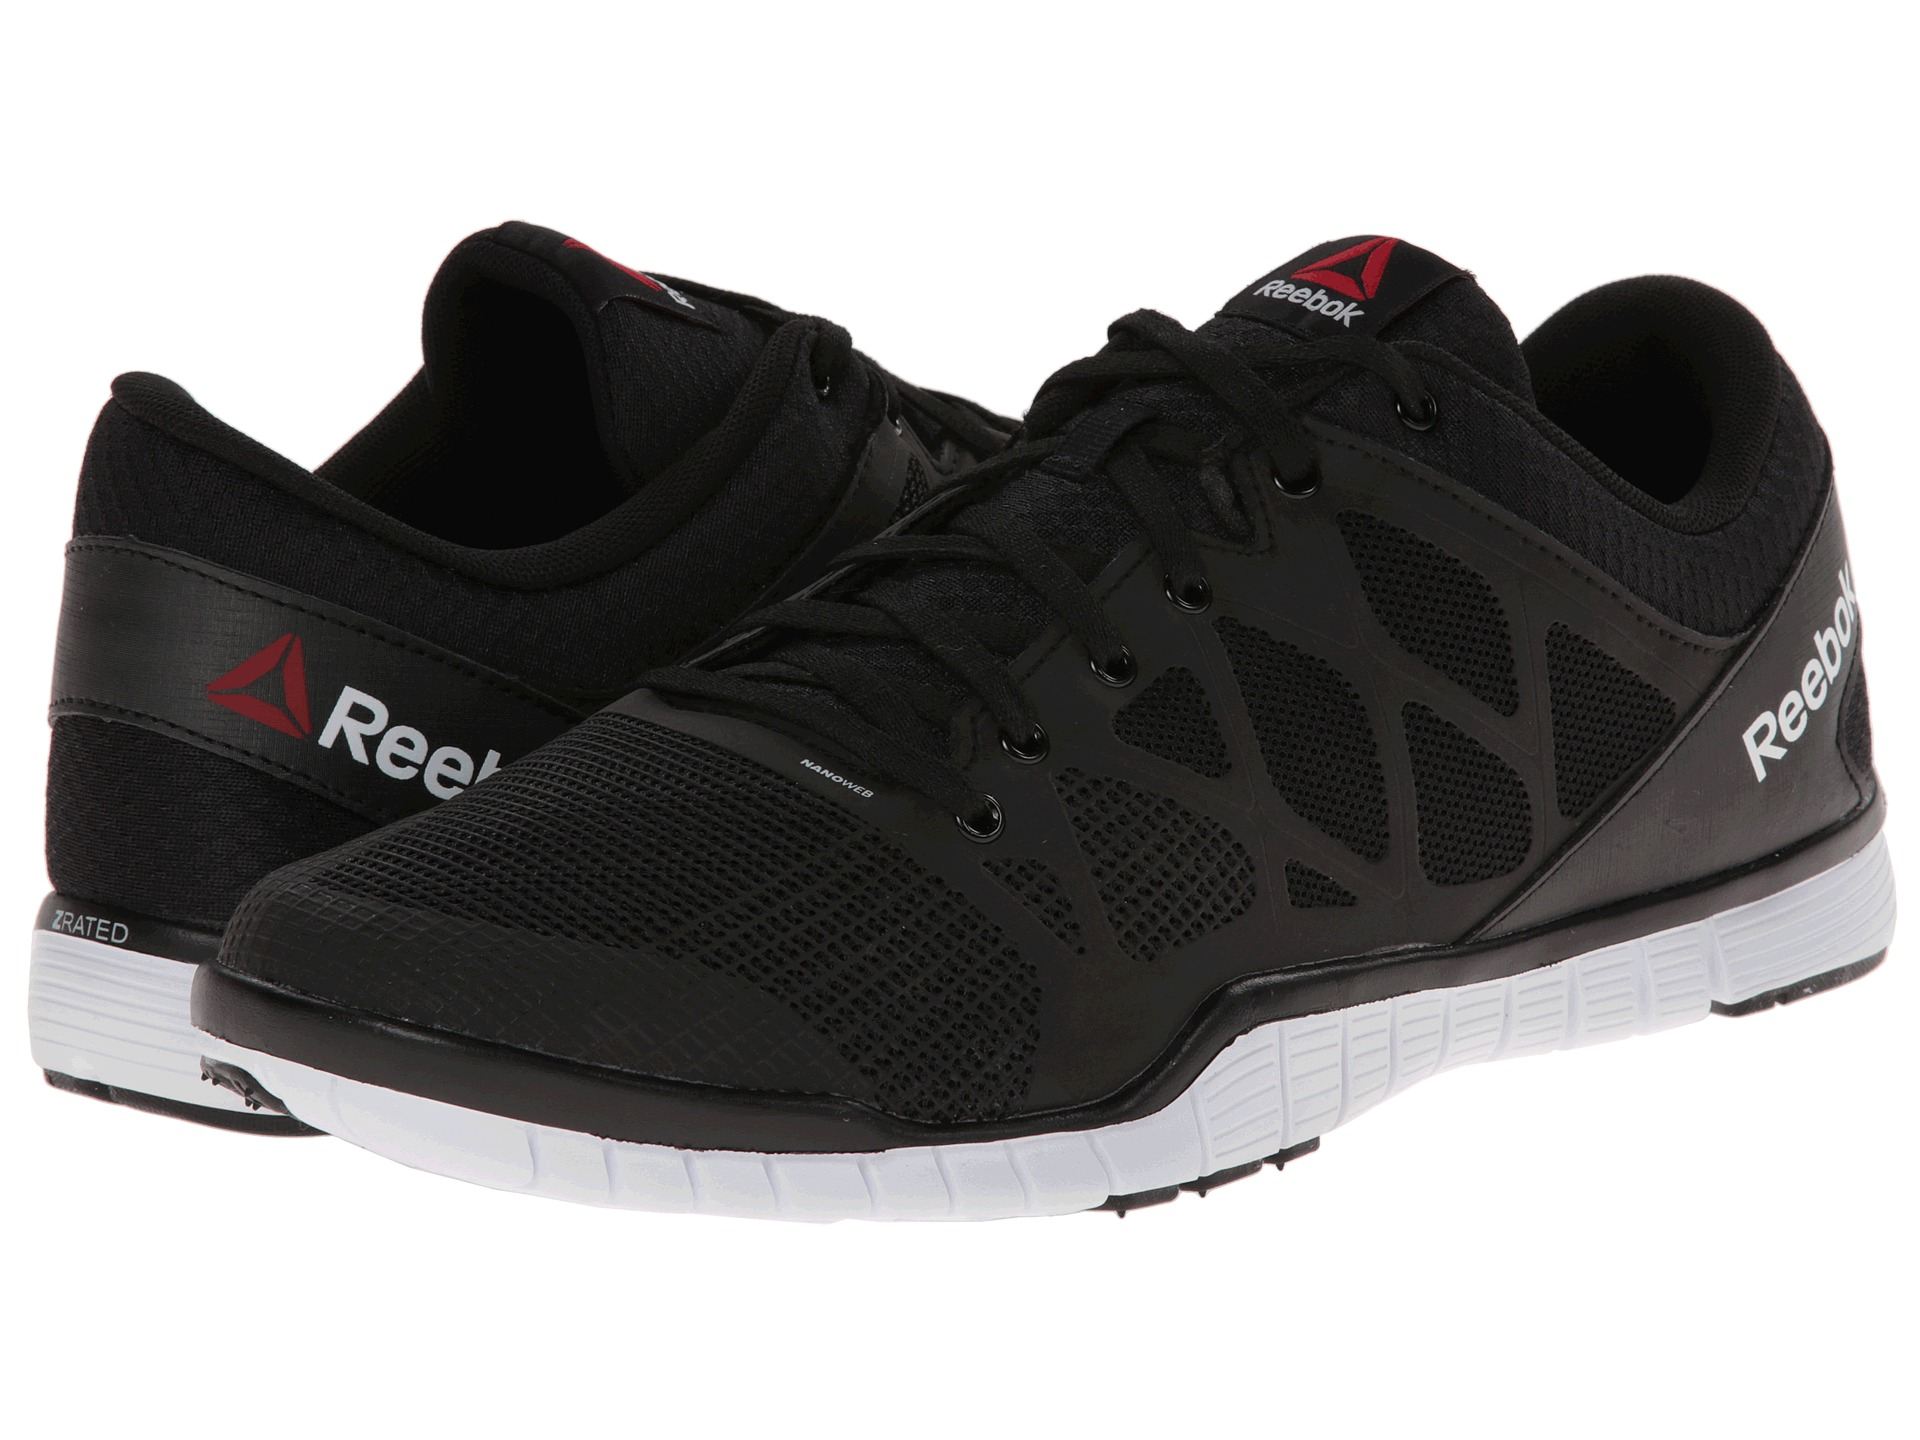 3bfd4179be7095 Buy reebok crossfit z rated